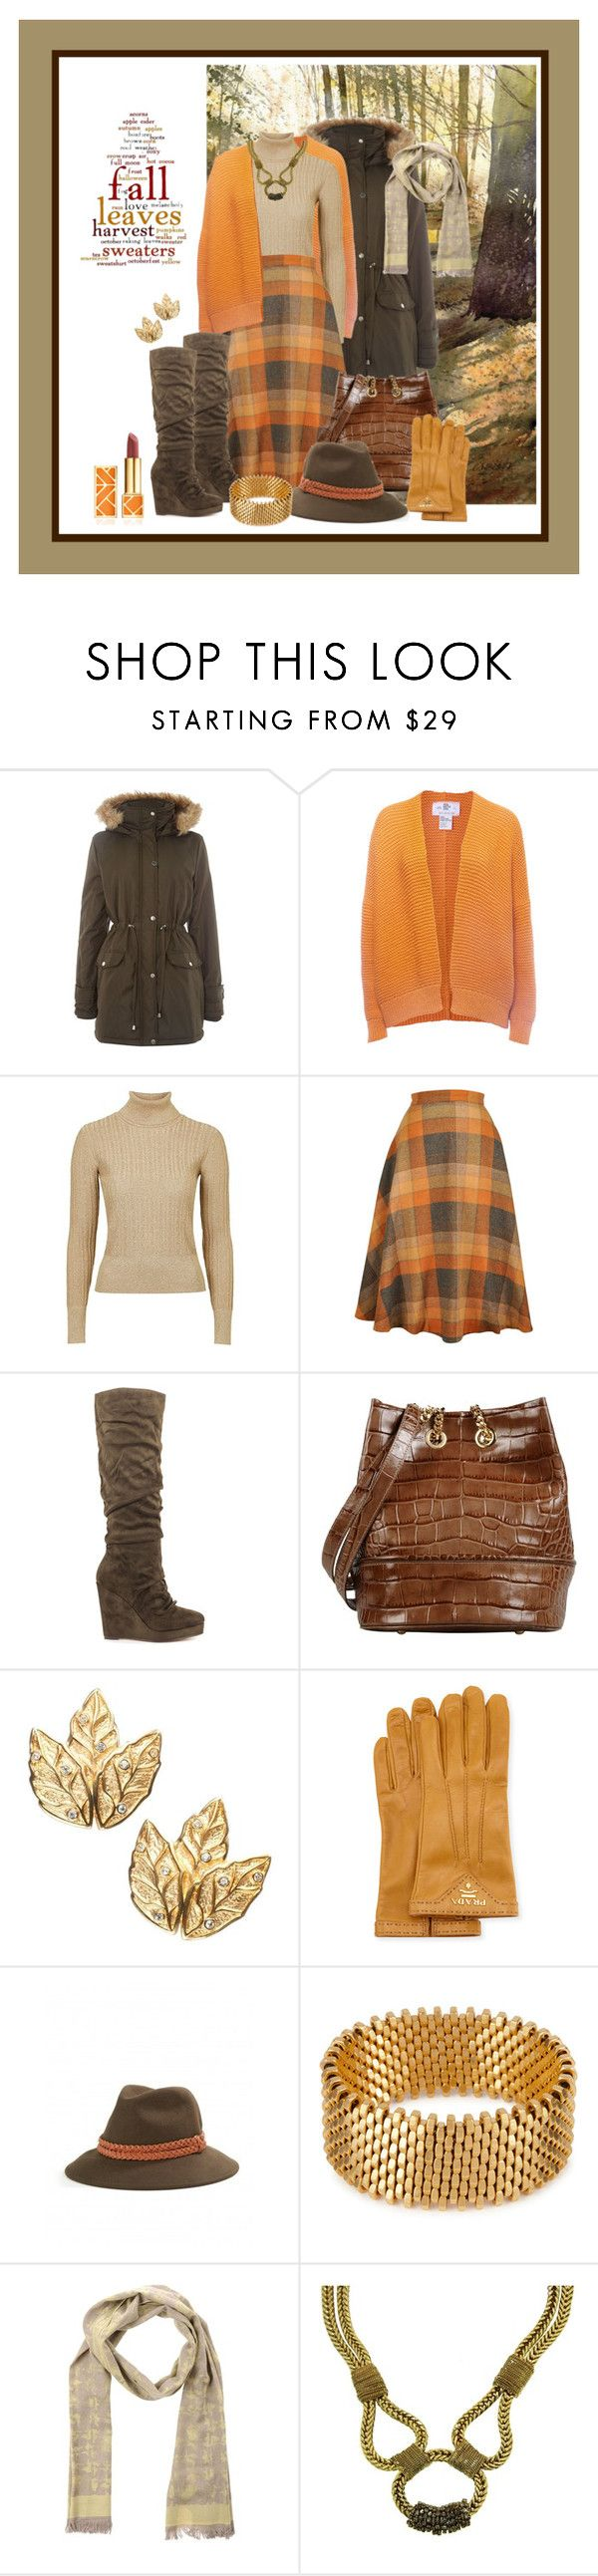 """Cool Weather Ahead - Oct. 2, 2015"" by franceseattle ❤ liked on Polyvore featuring VILA, Wool and the Gang, Topshop Unique, Michael Antonio, Jolie By Edward Spiers, Prada, Yerse, Alice Menter, Class Roberto Cavalli and Tory Burch"